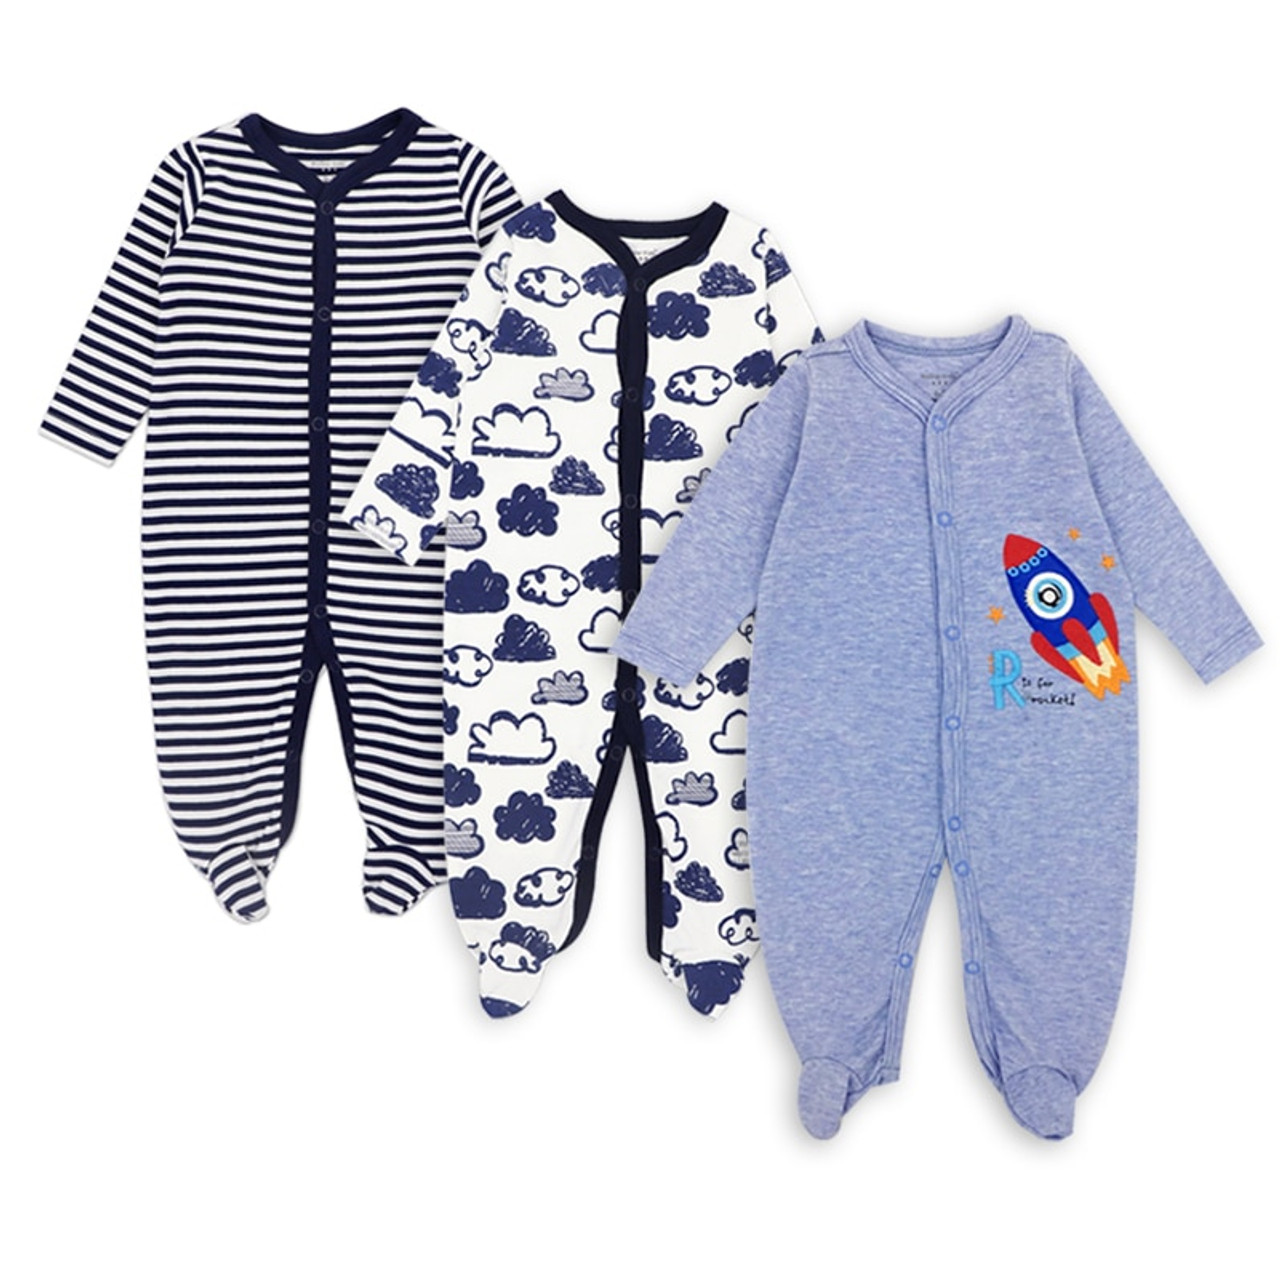 960721ff2110 2 3Pcs Lot100%Cotton baby rompers suit newborn baby girls boys clothes Long  ...